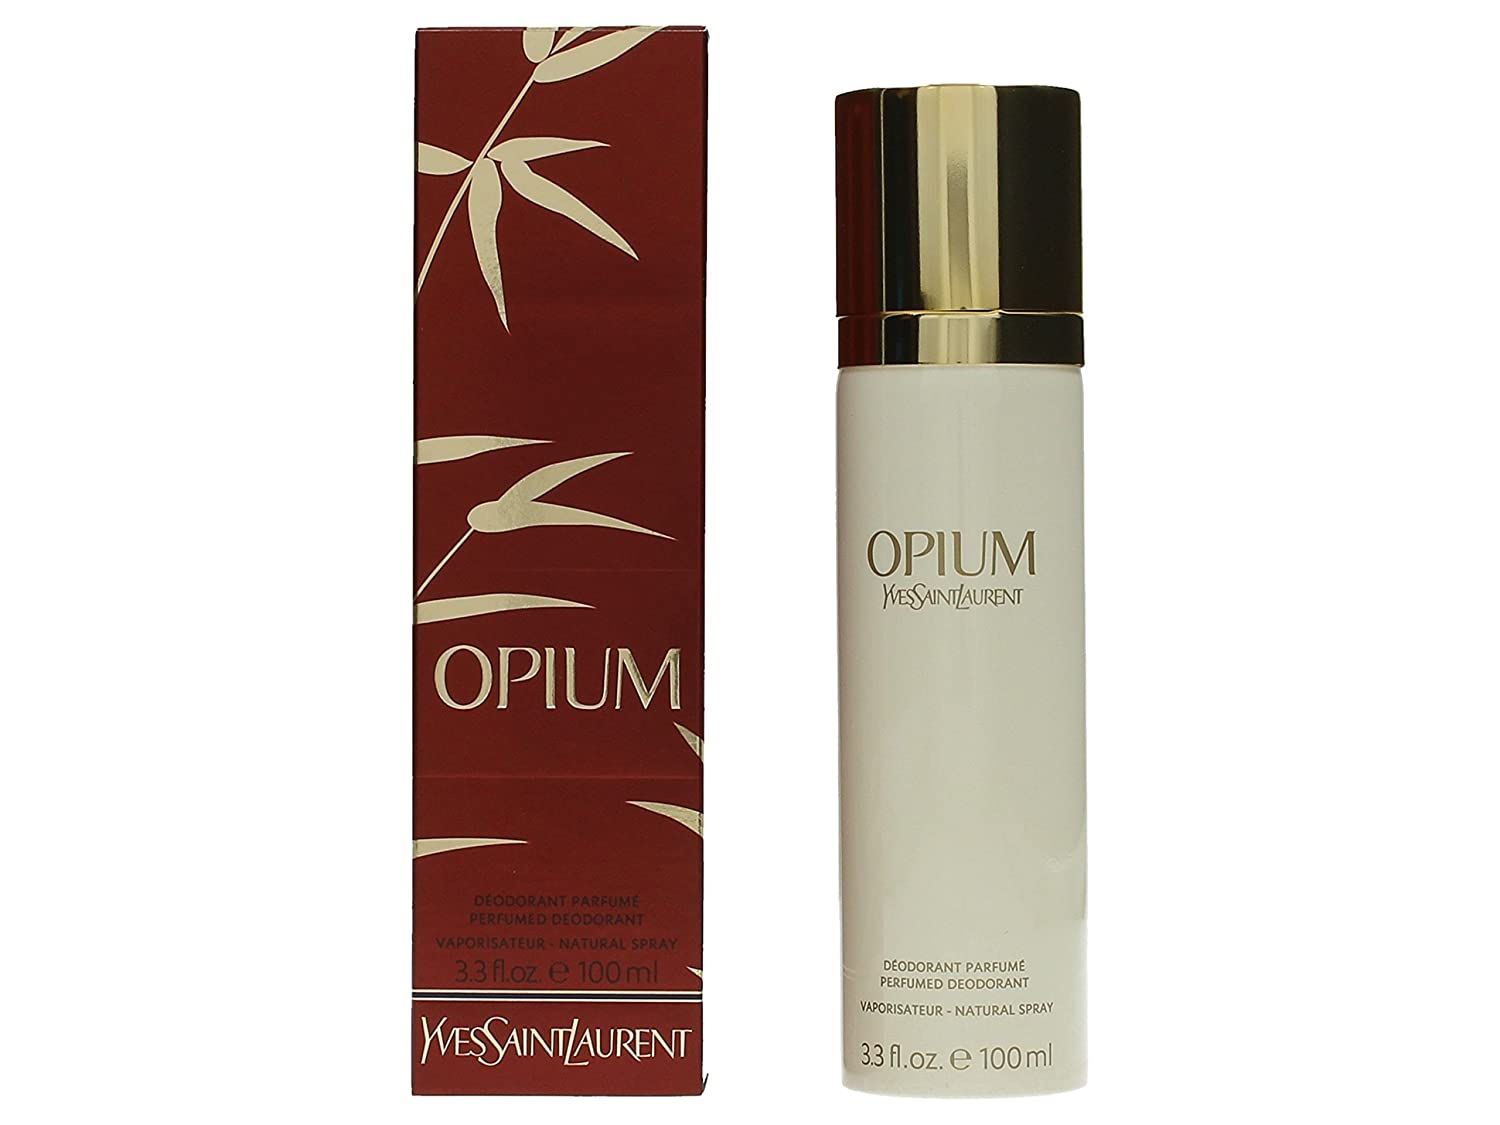 Opium Yves Saint Laurent 100ml Opium by Yves Saint Laurent